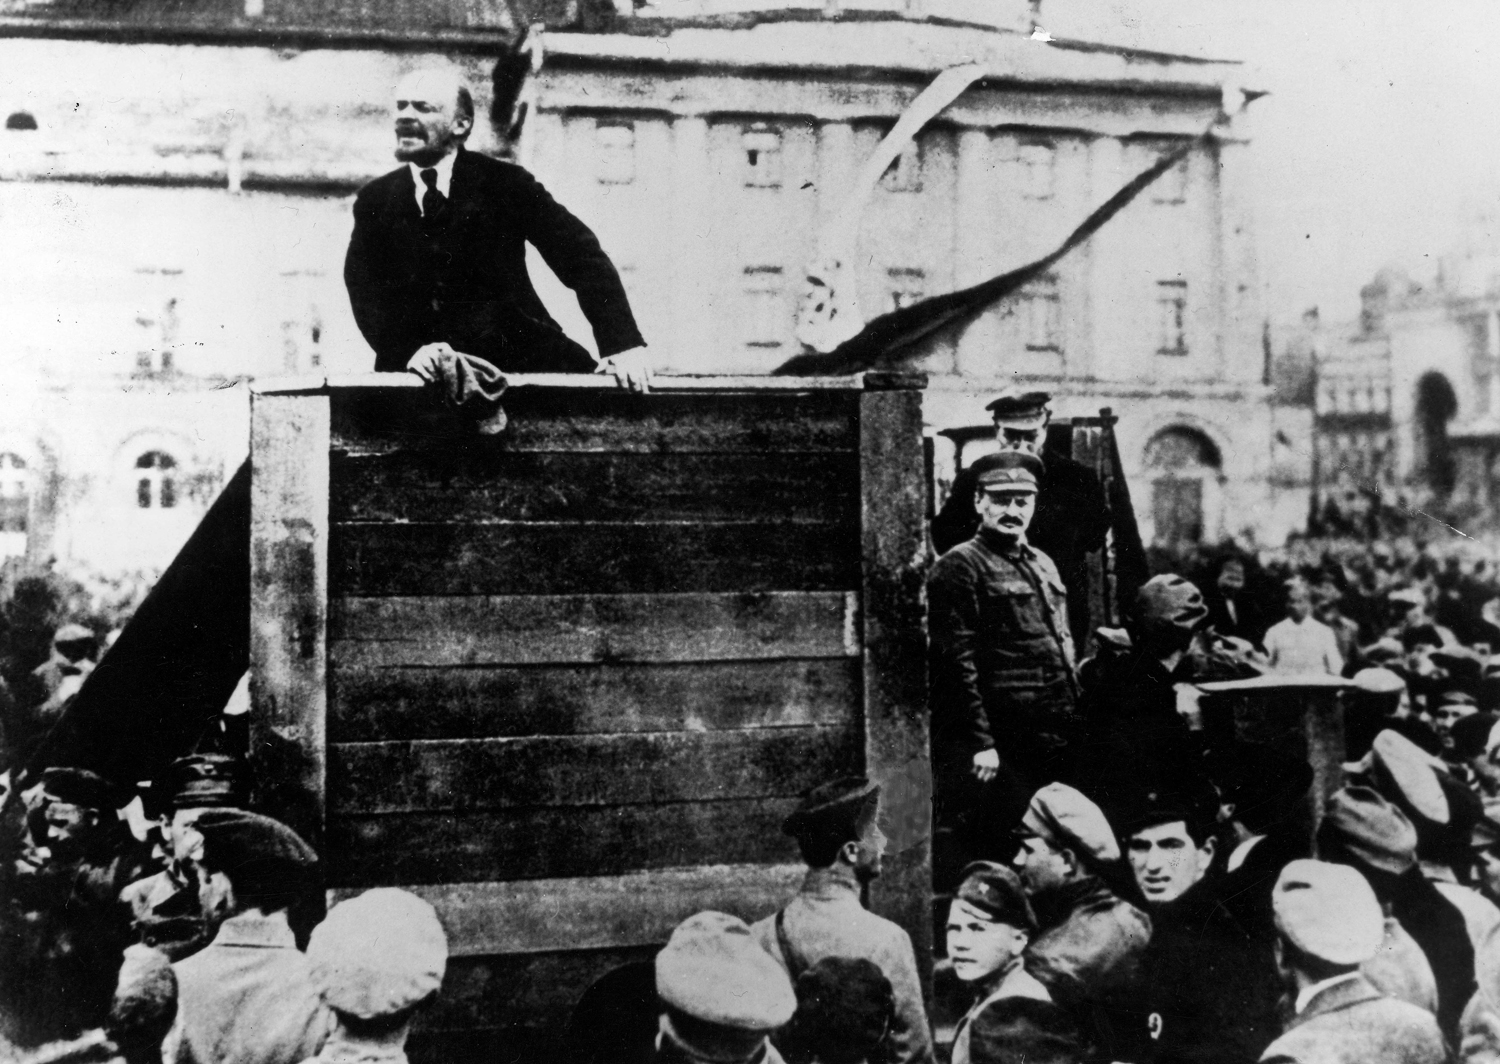 The Original Scene                               Taken within seconds of the preceding photo, this frame reveals that Lenin was joined that day by fellow Central Committee members Leon Trotsky, who stands in hat and mustache on the stairs to the right of the podium, and Lev Kamenev, who stands behind him. Perceived by Stalin as rivals to his power, both men were ultimately purged and their contributions to the revolution largely eliminated from the historical record. Though the photograph was widely published with the two men present during the 1920s, it was reproduced with stairs in their place for most of the Soviet era, even during the Gorbachev period.